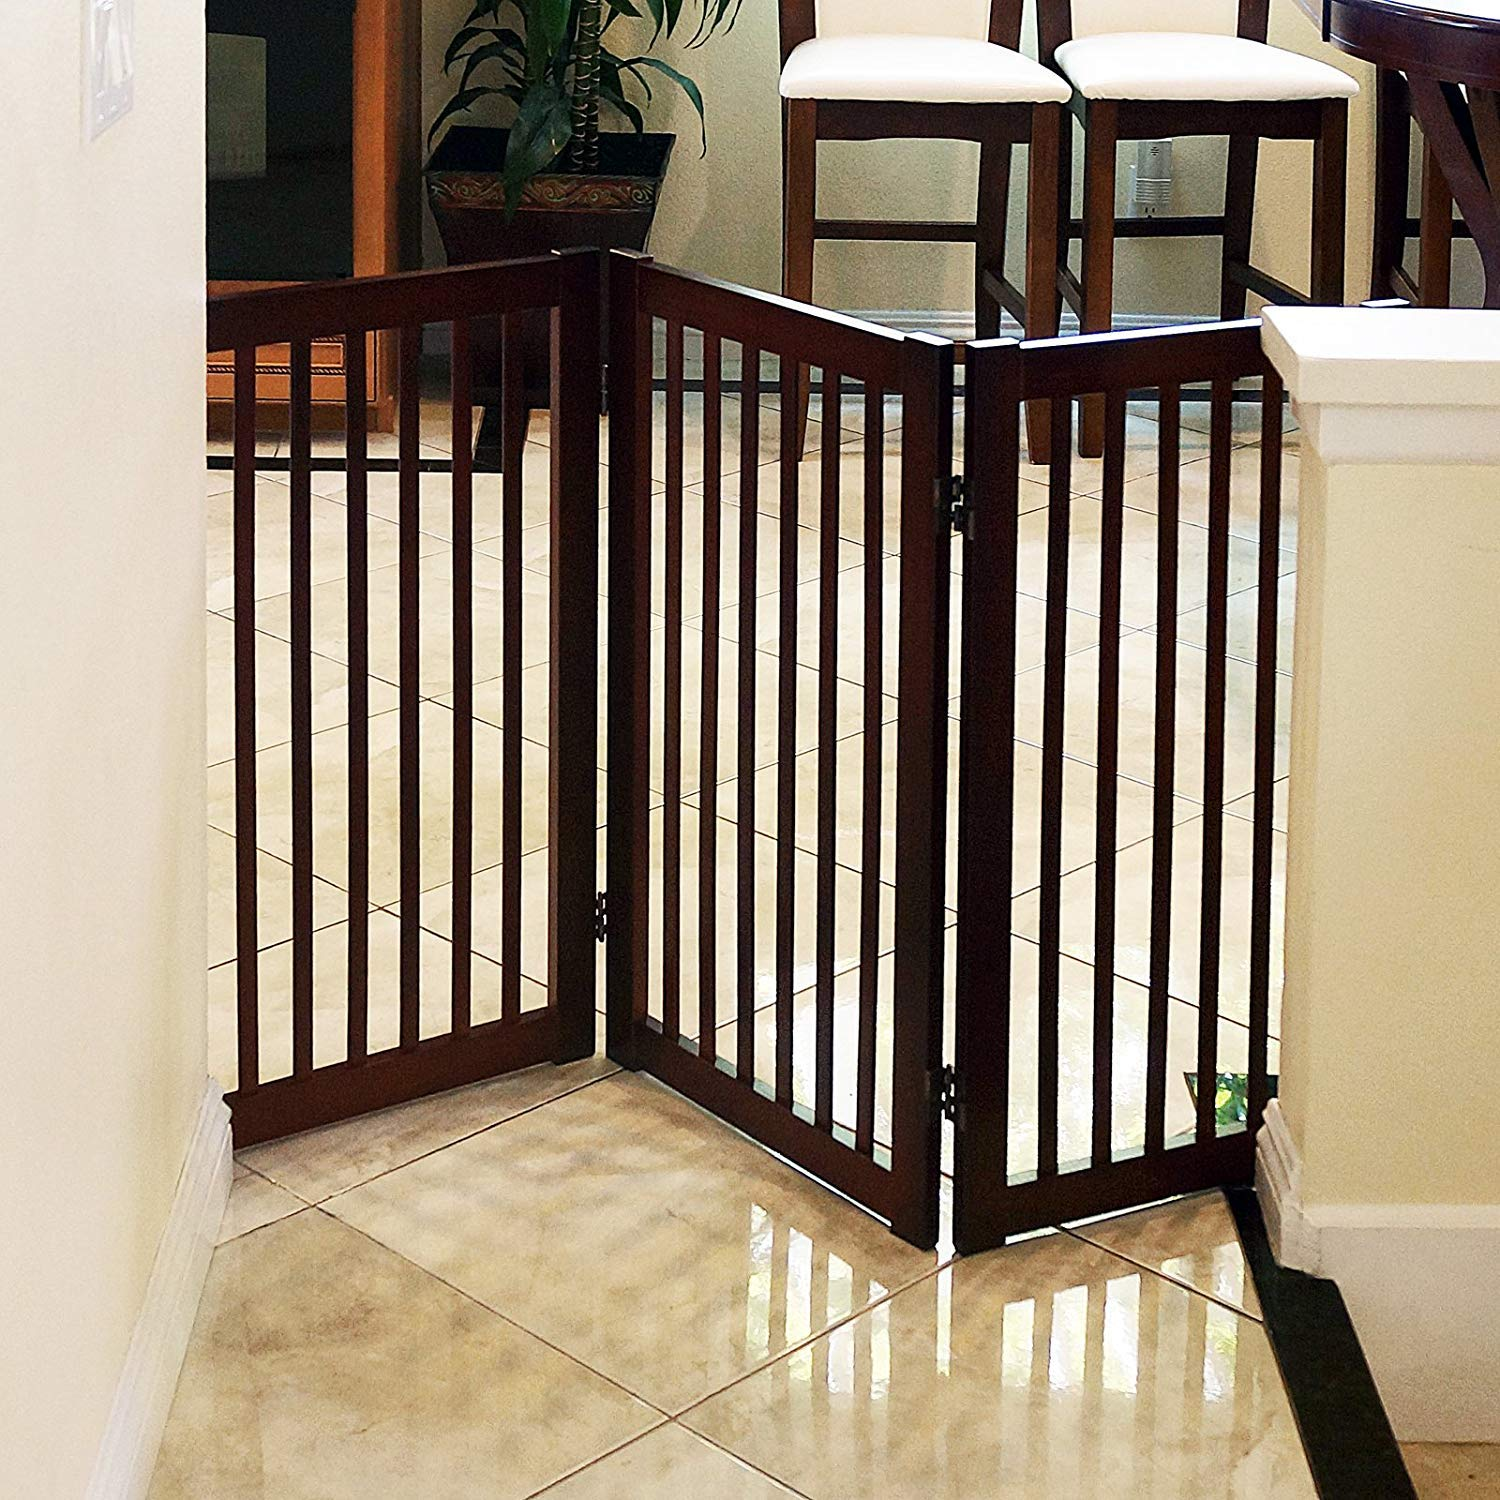 WELLAND Wood Freestanding Pet Gate Espresso, 54-Inch Width, 30-Inch Height No Support Feet